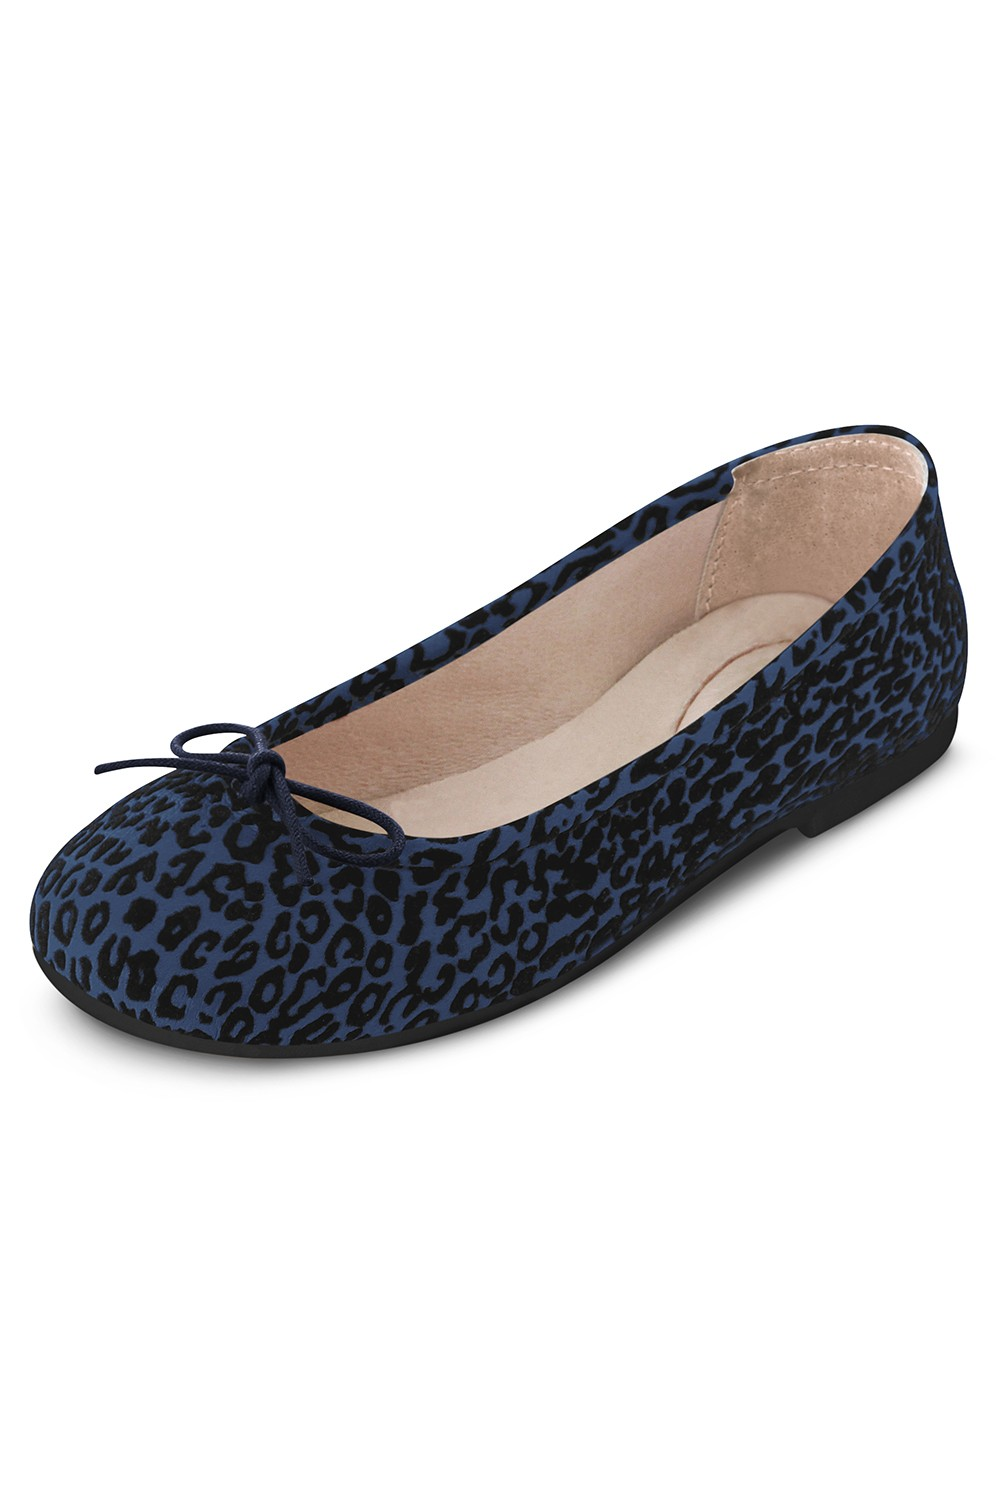 Arabella Leopard - Tween Girls Fashion Shoes